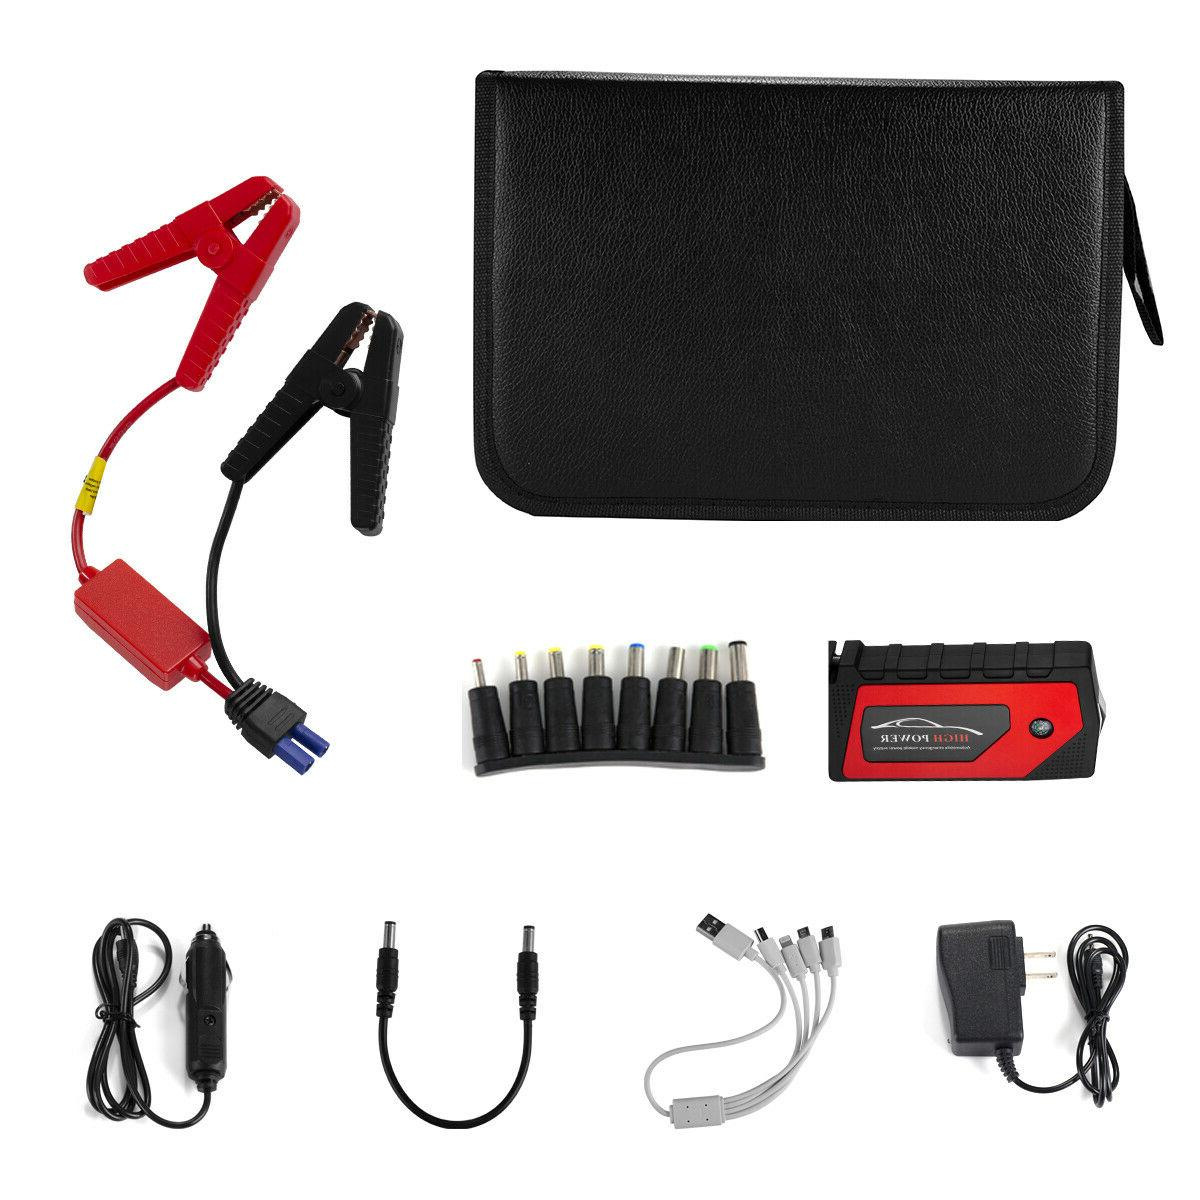 12V Car Portable Bank Battery Booster 69800mah